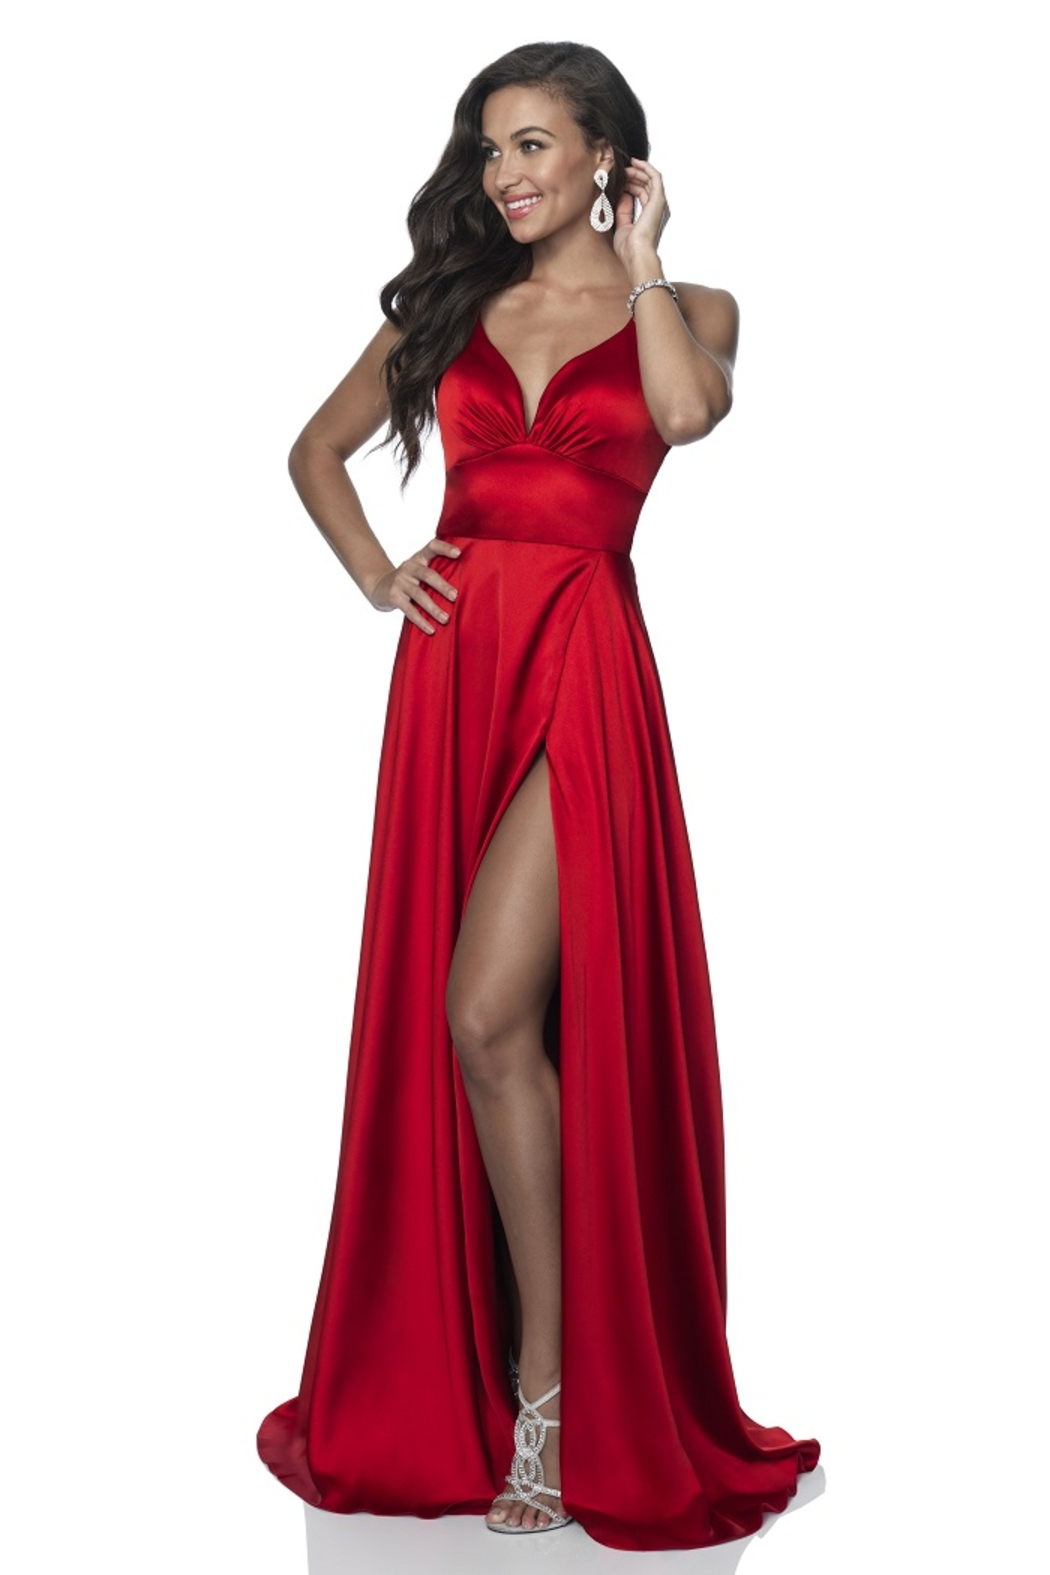 Blush Prom Red Satin A-Line Long Formal Dress - Main Image